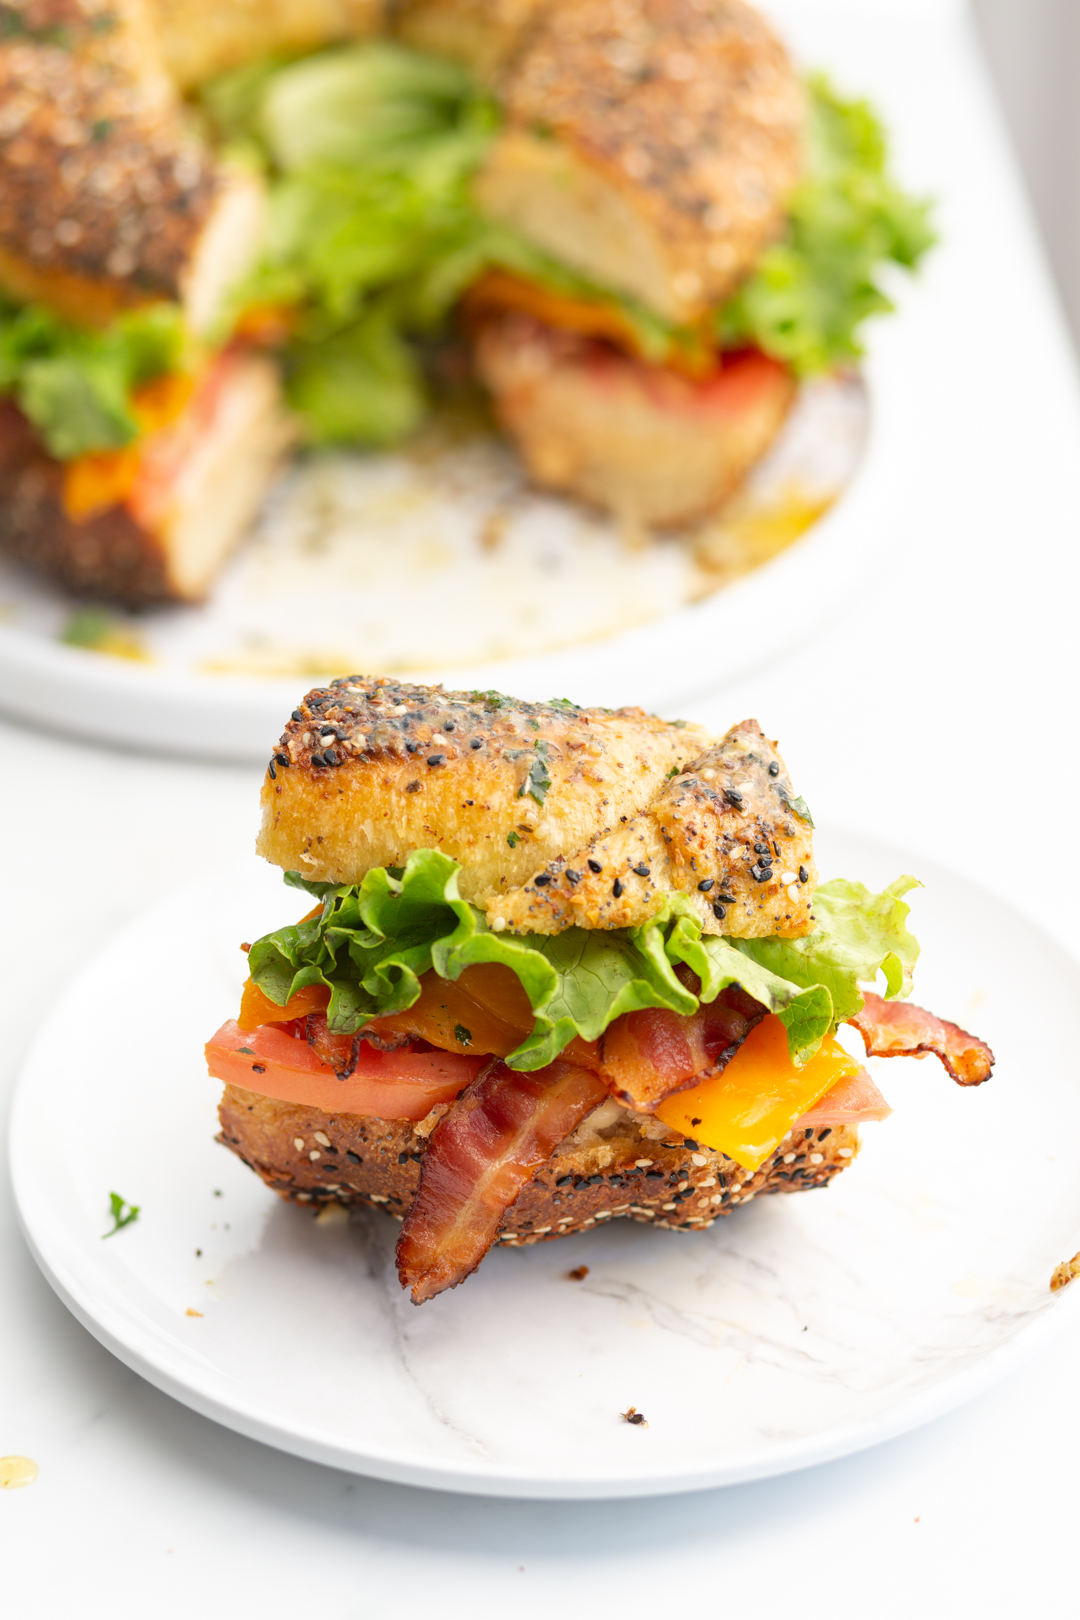 BLT slider with bacon, lettuce and tomato